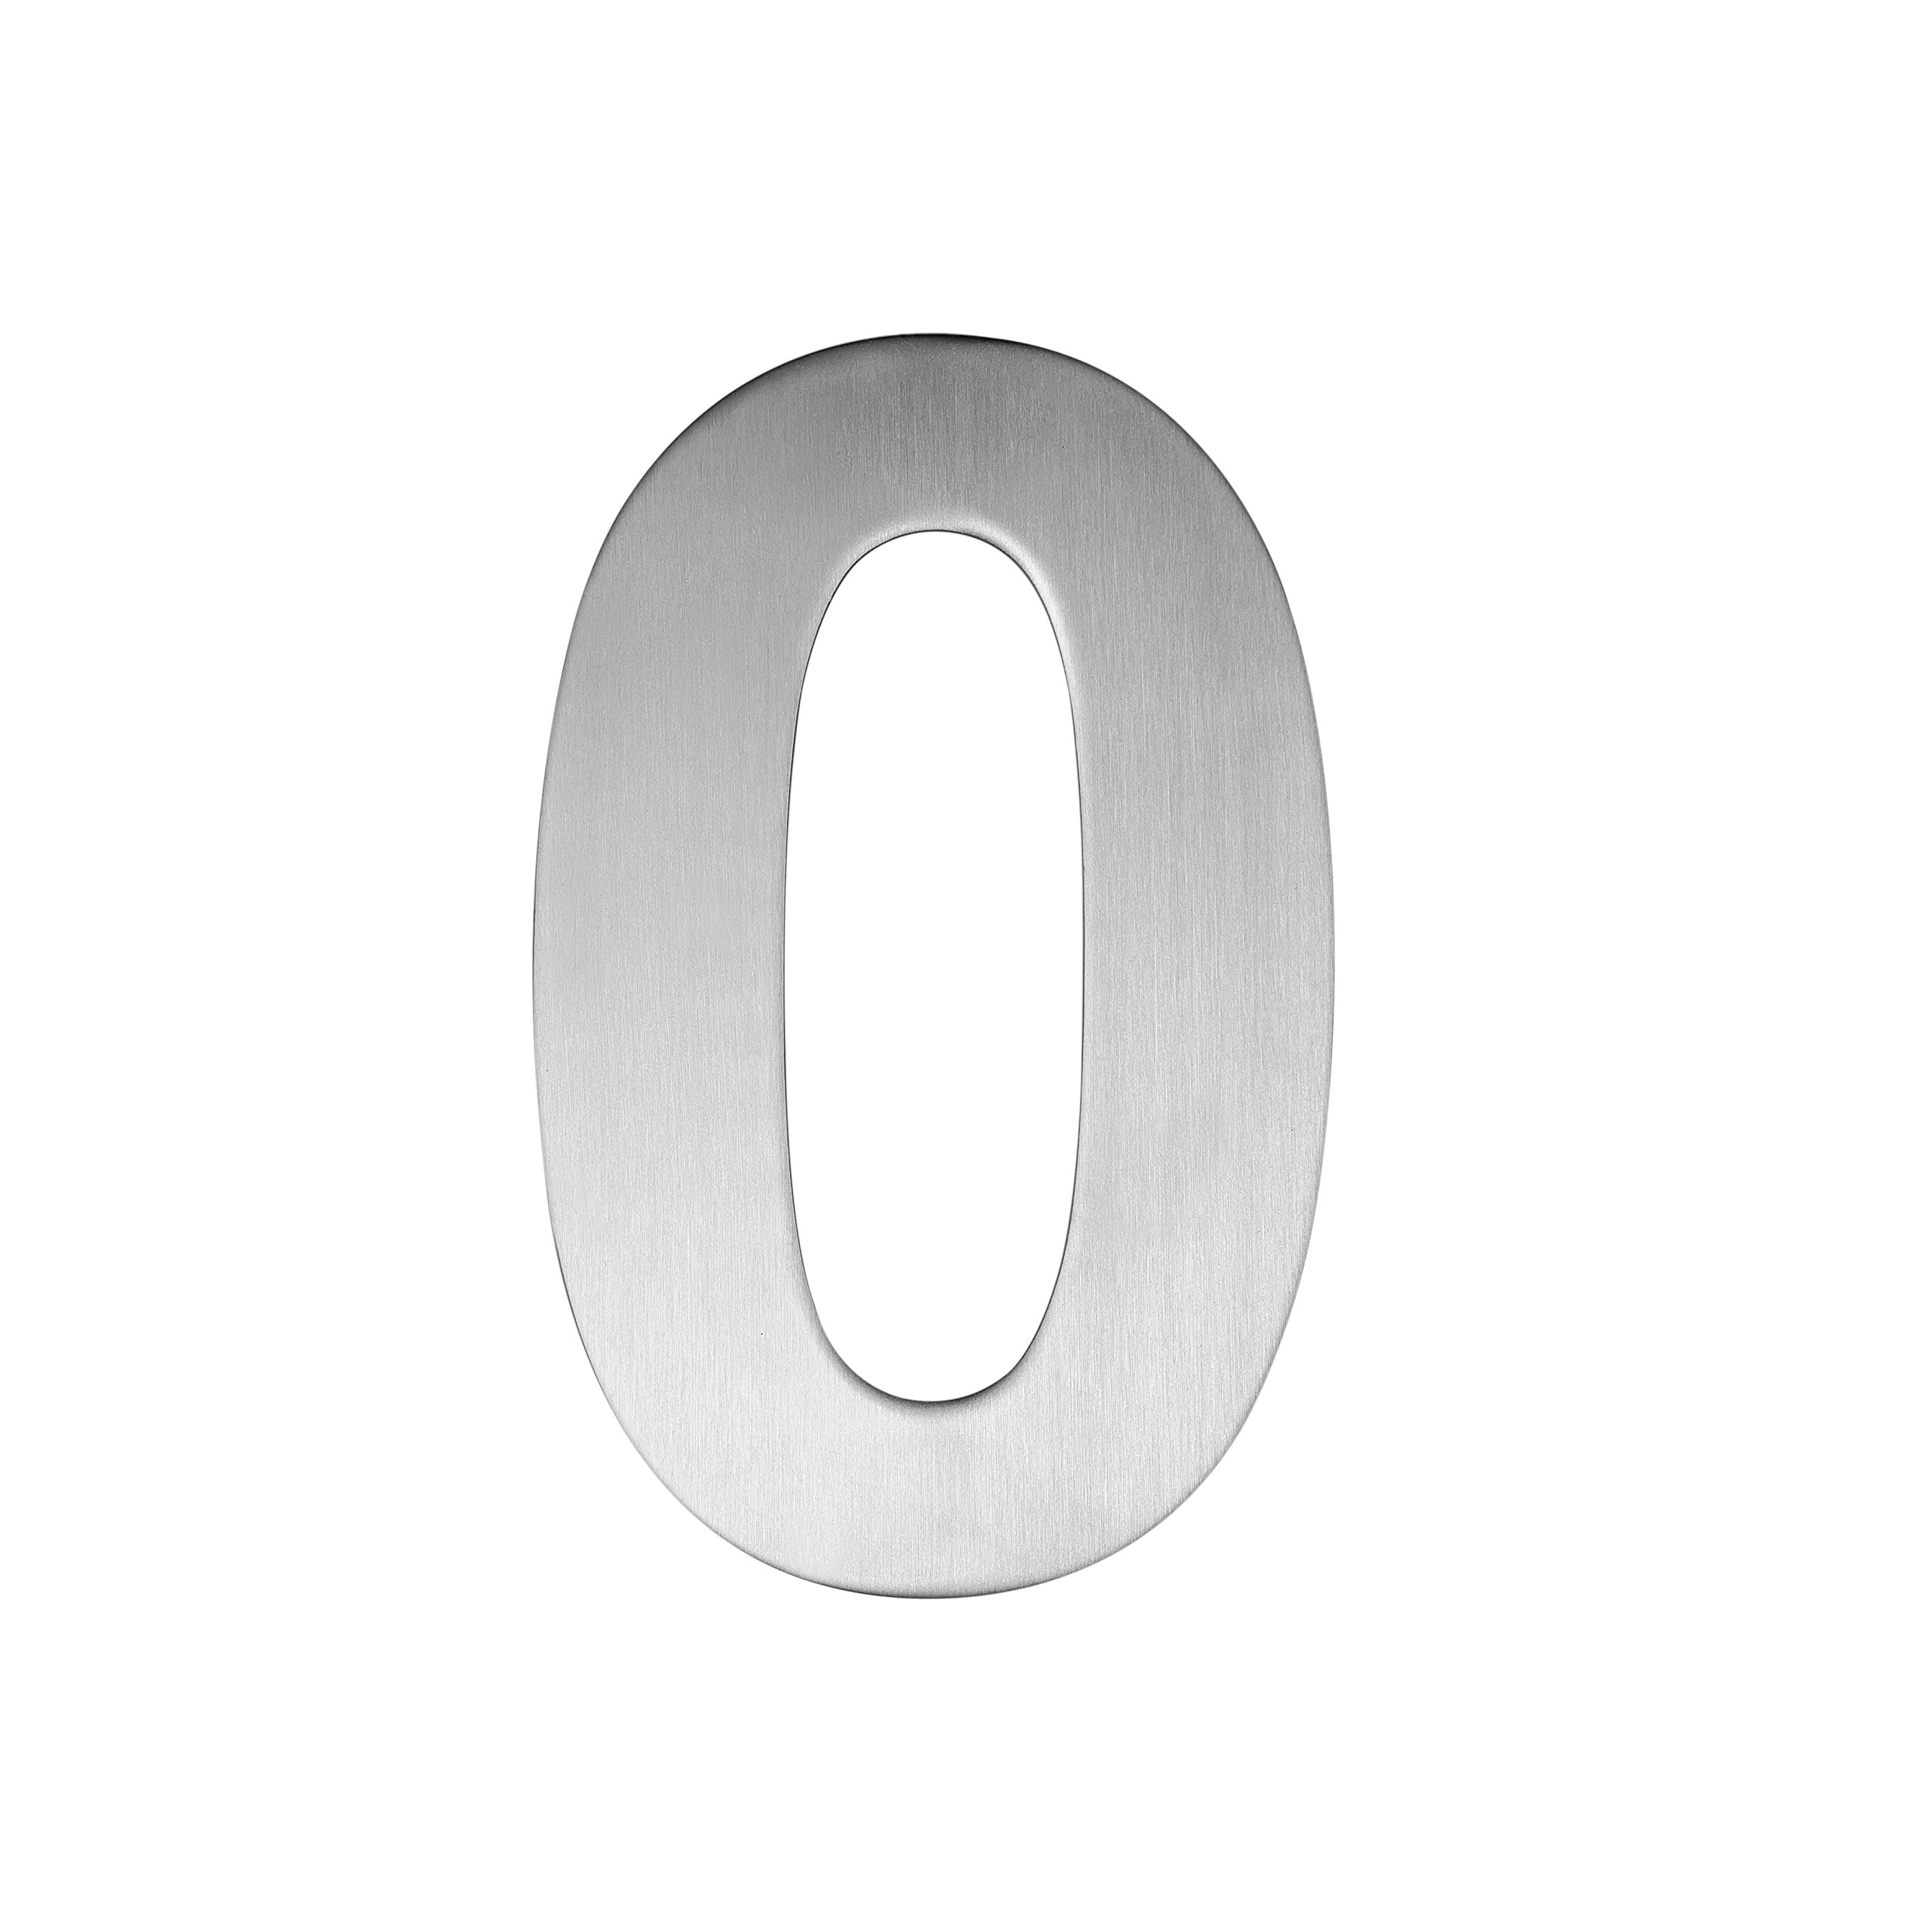 QT Modern House Number - SUPER LARGE 12 Inch - Brushed Stainless Steel (Number 0 Zero), Floating Appearance, Easy to install and made of solid 304